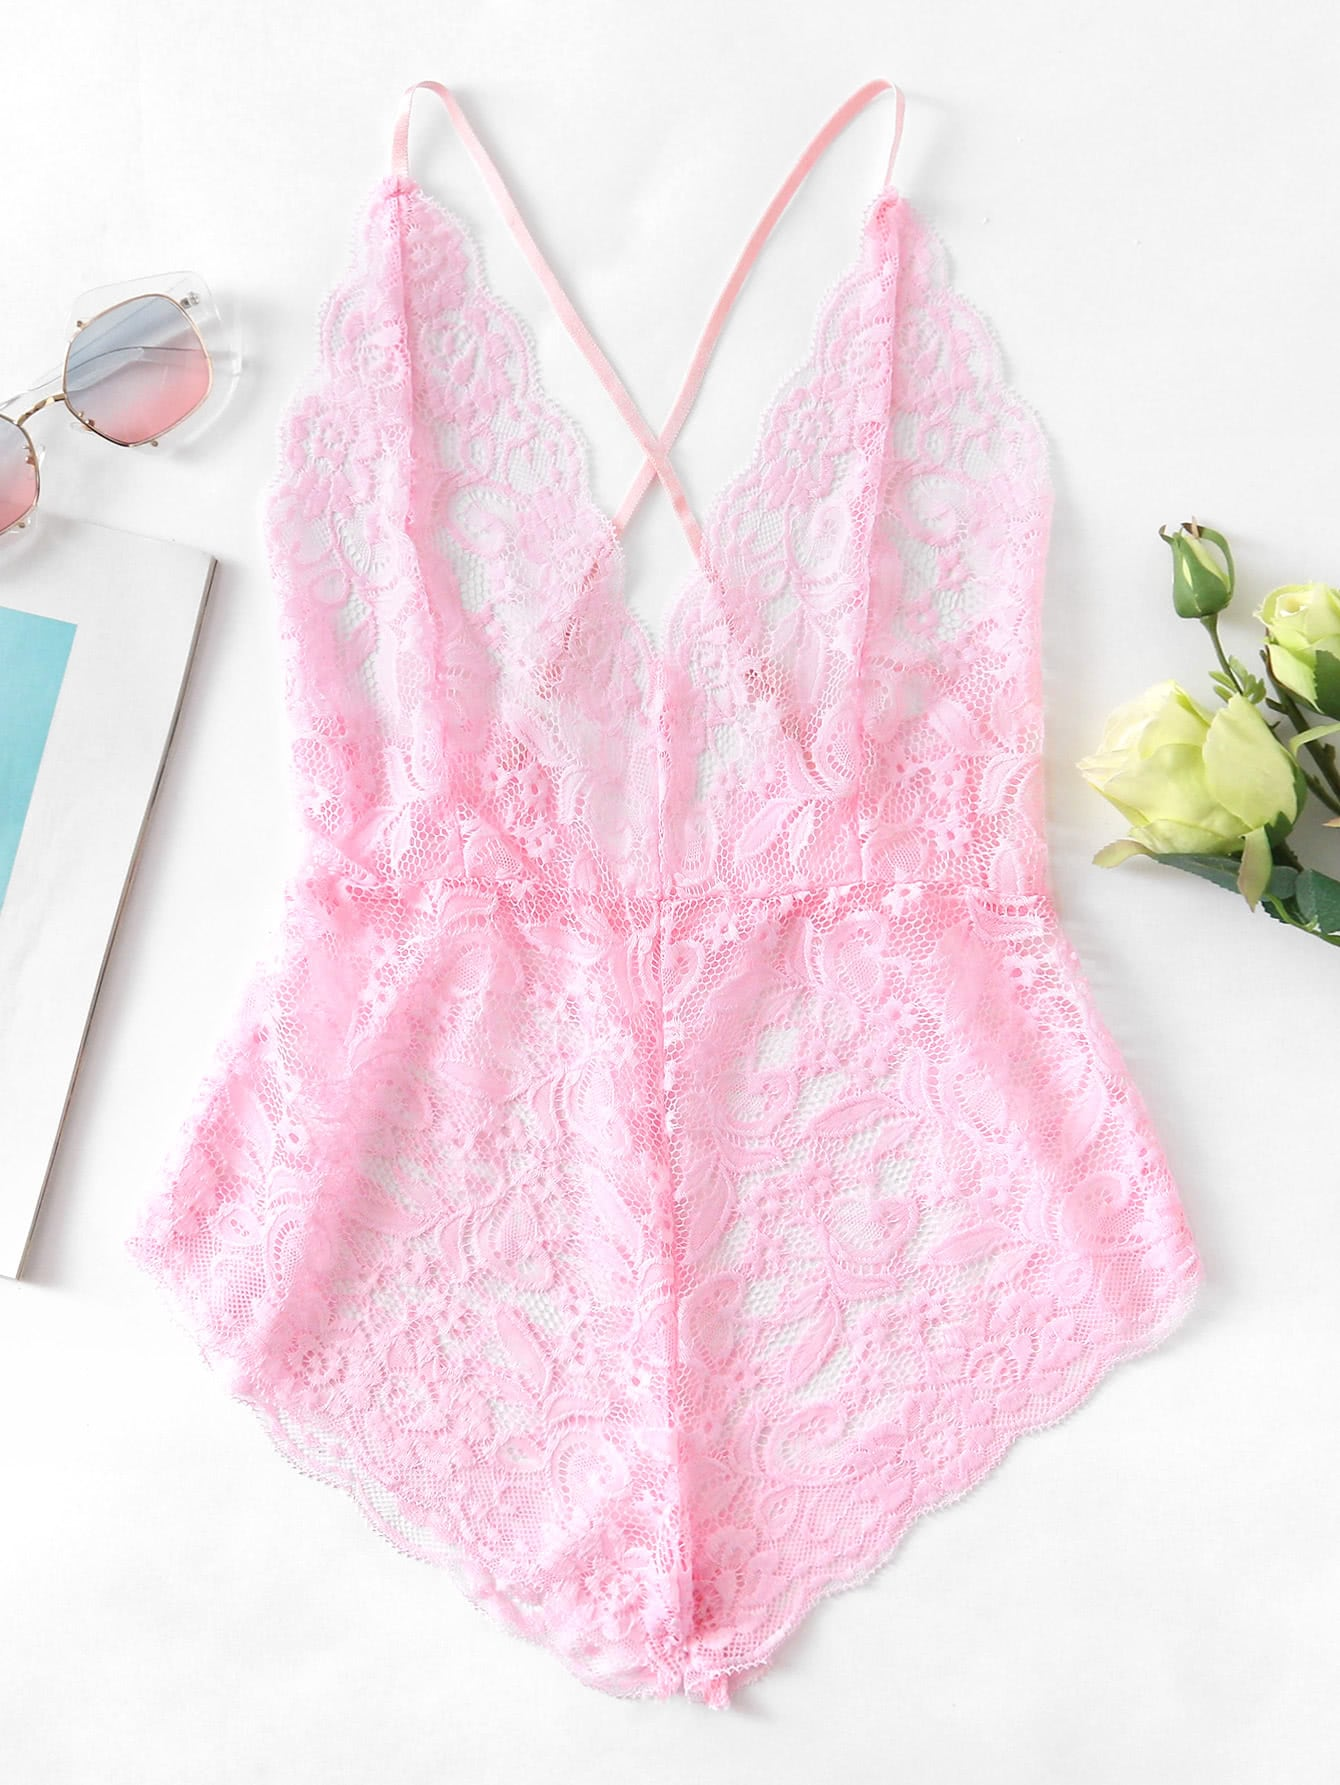 Scalloped Trim Criss Cross Lace Bodysuit criss cross lace up bodysuit